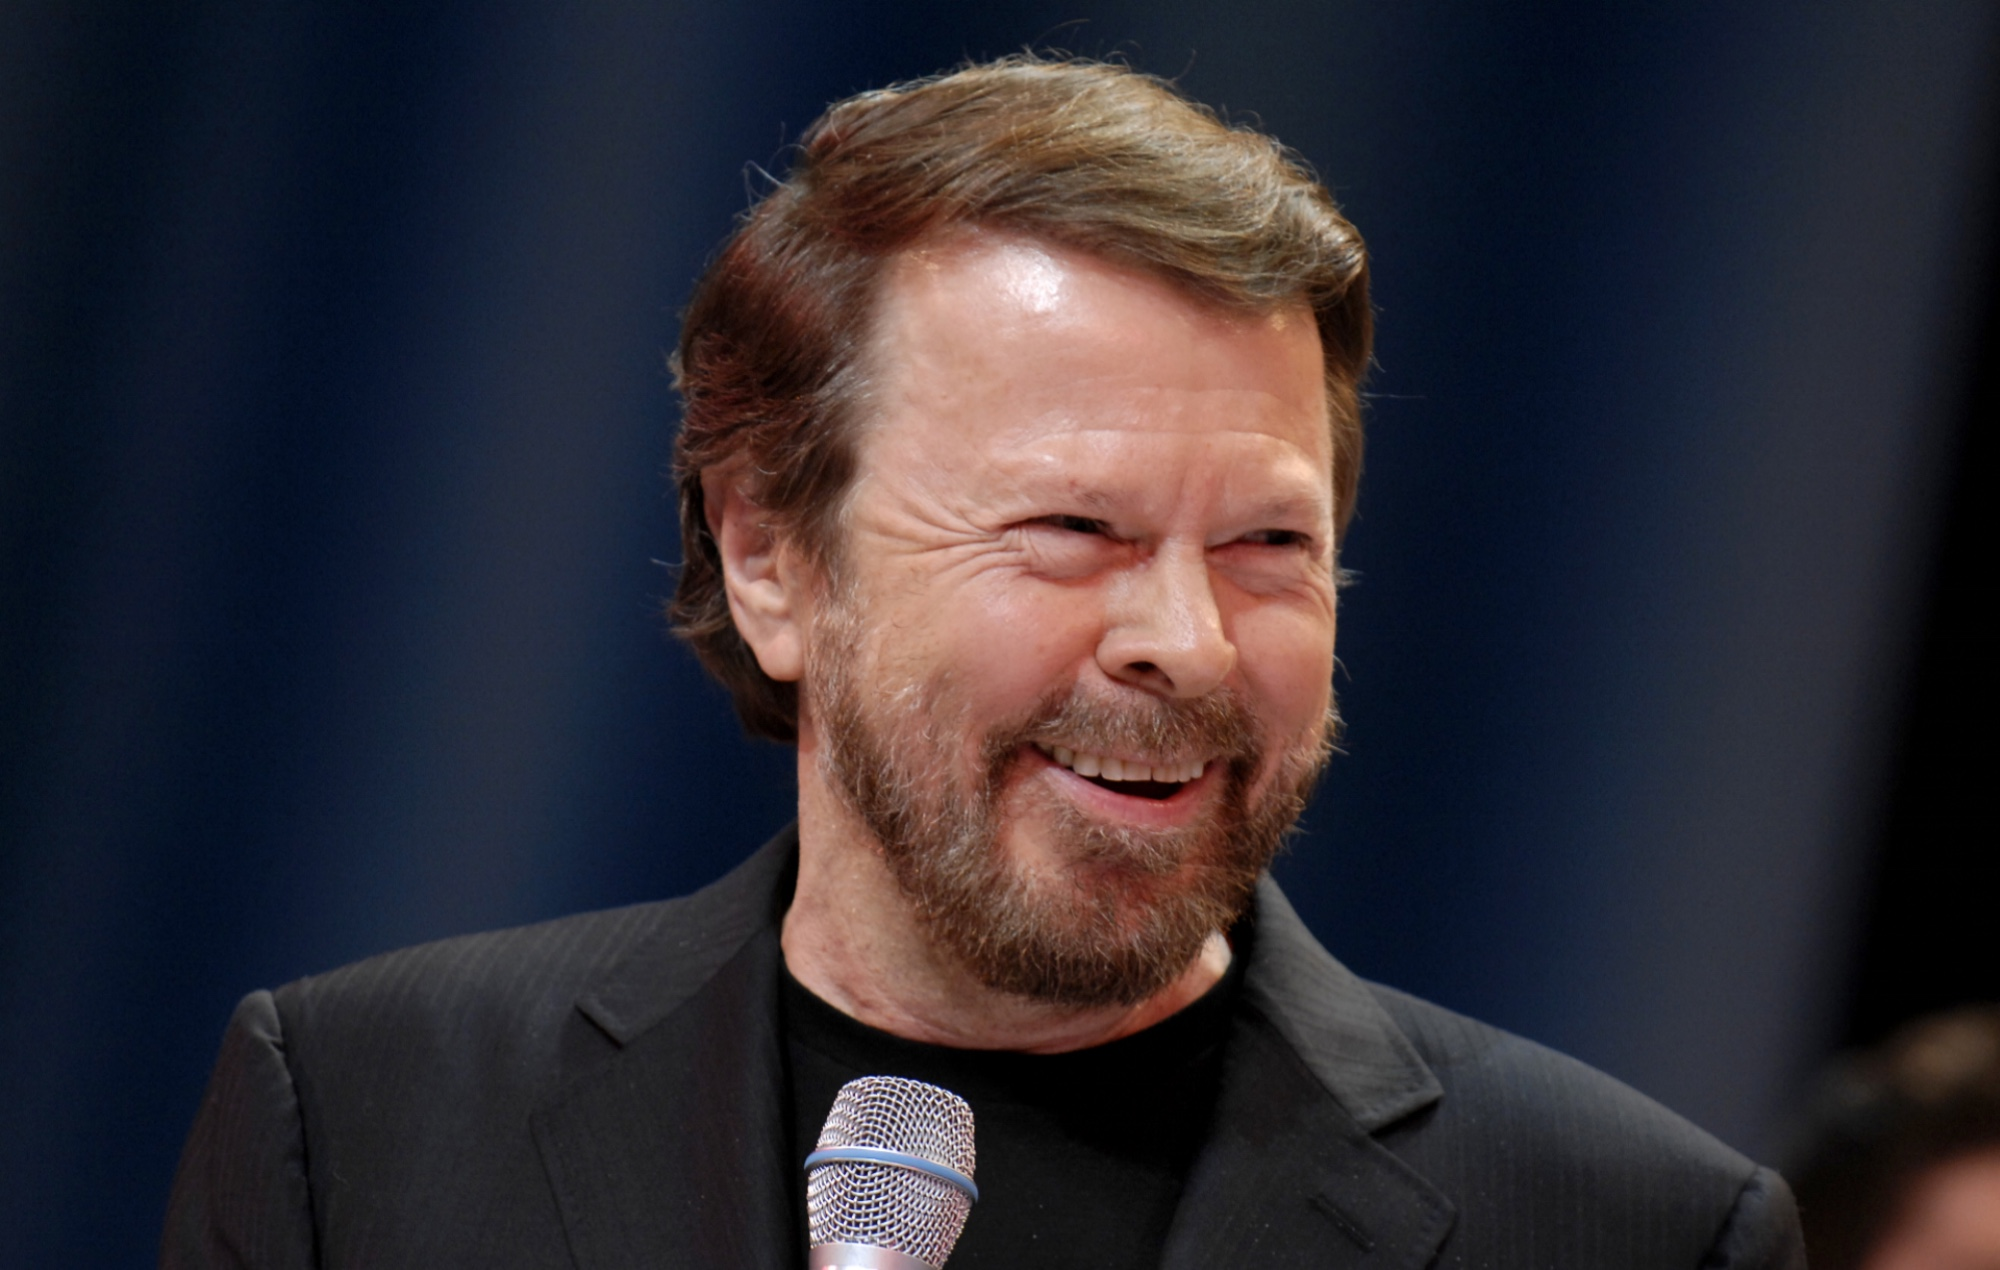 Björn Ulvaeus rules out any upcoming ABBA biopics